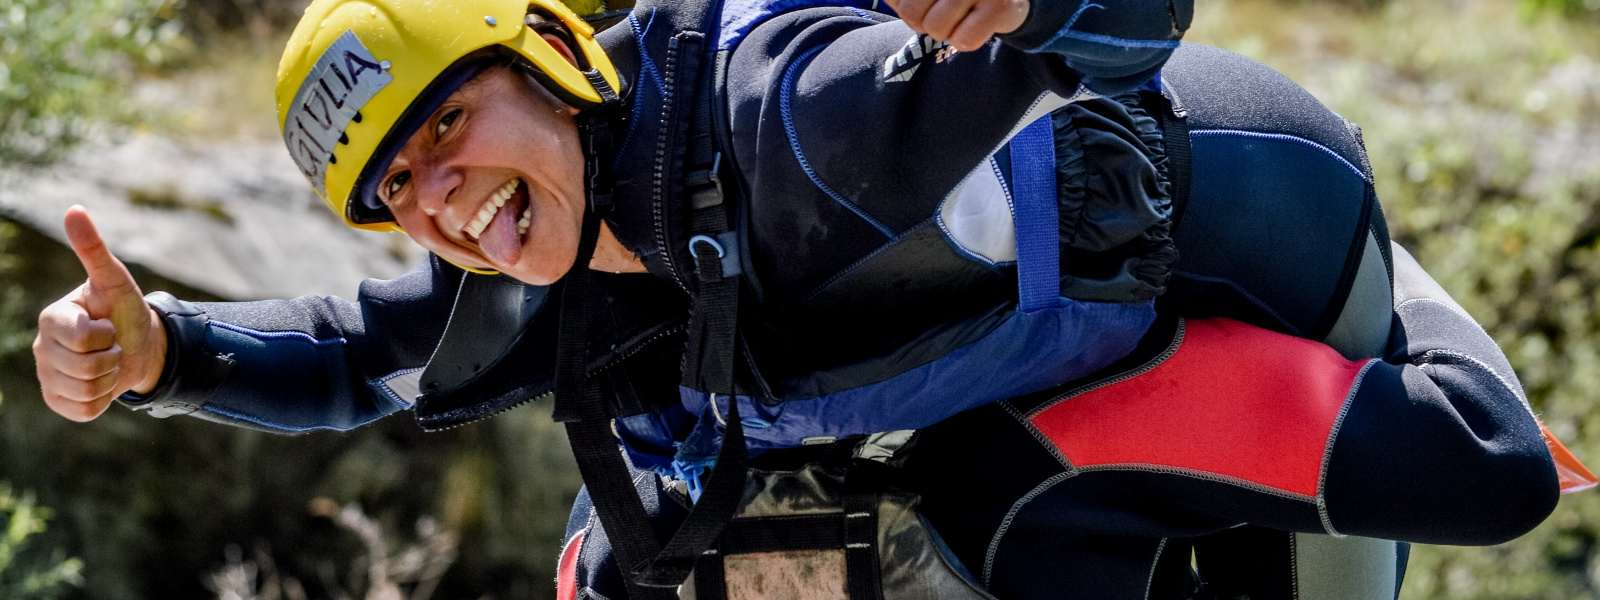 Simpatici educatori per i Sesia Rafting camp